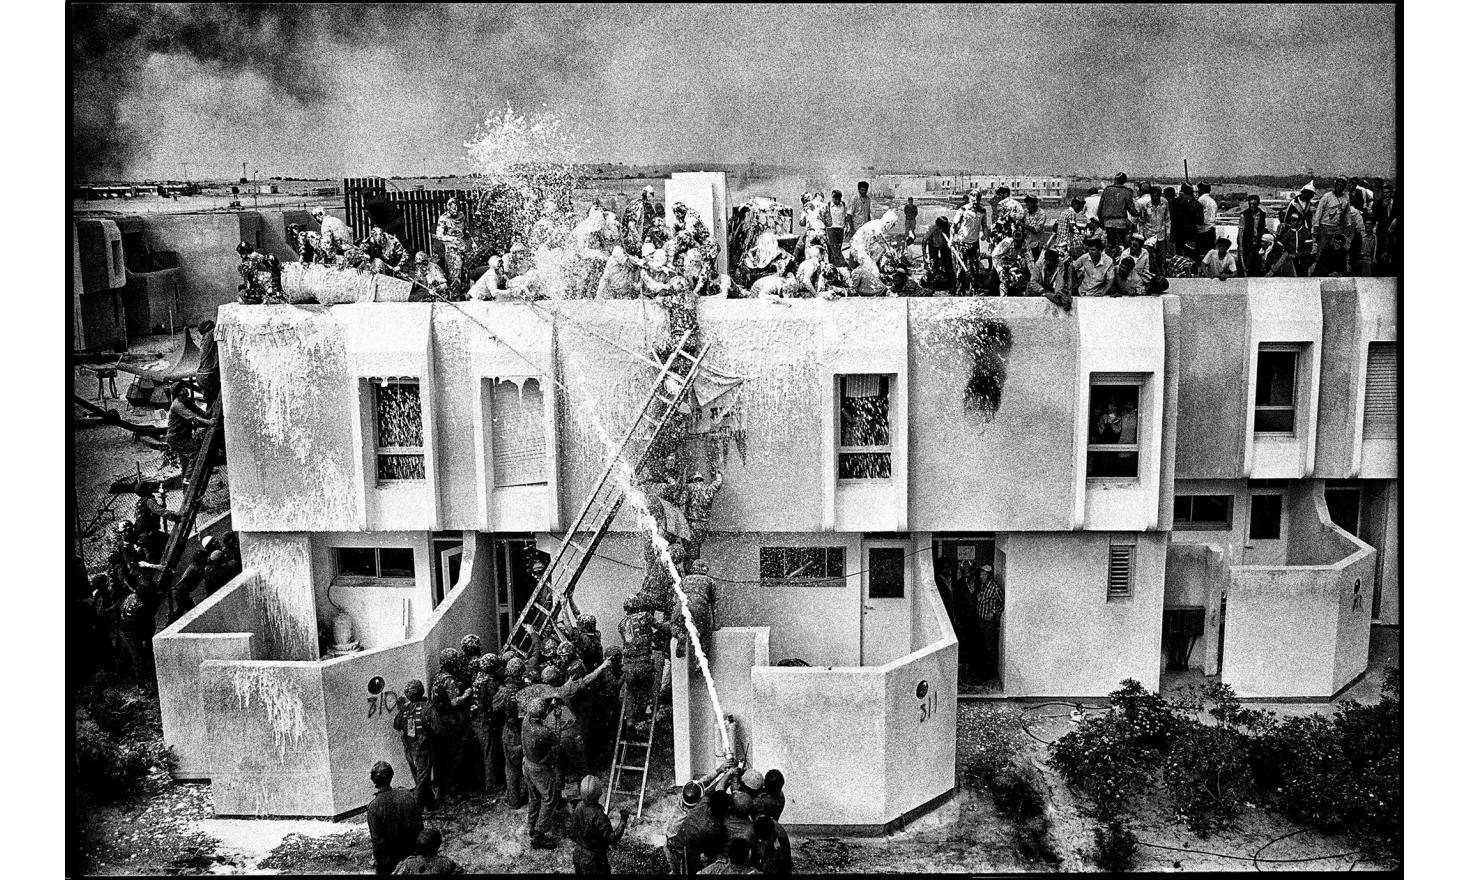 Start of the evacuation of the settlement of Yamit, in the Sinai peninsula. The last israeli settlers refused to leave, paving the way for an attack by the israeli army. Yamit, occupied sinai peninsula. April 21, 1982